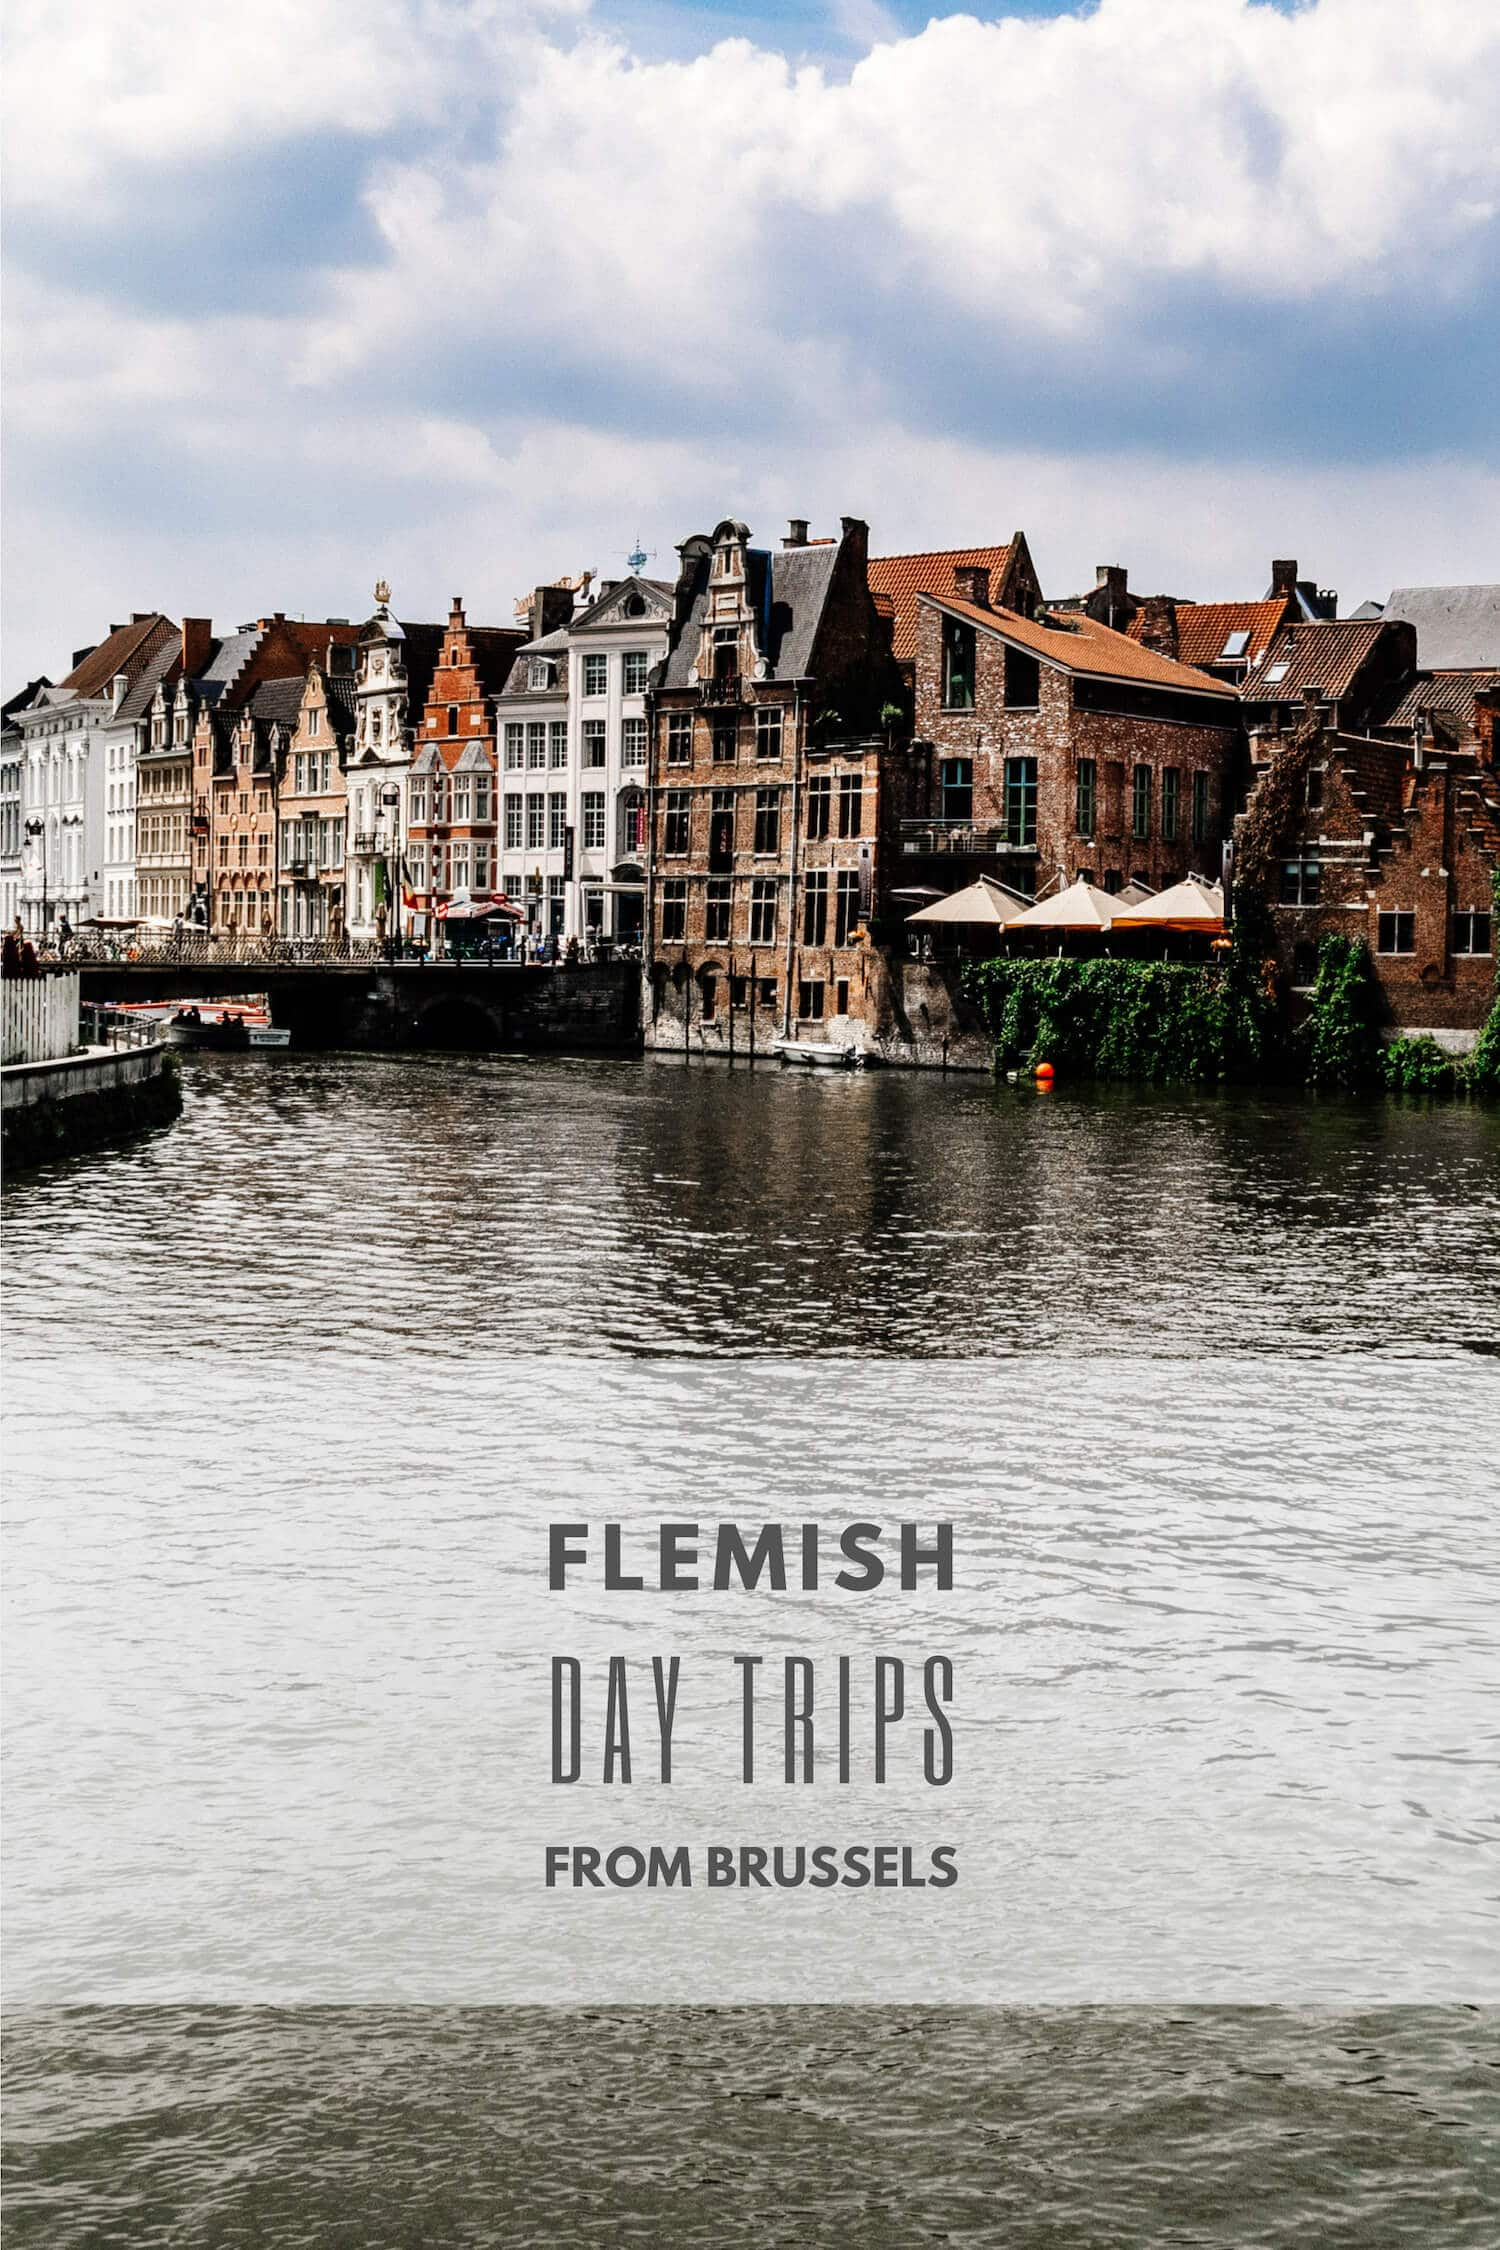 Flemish Day Trips from Brussels